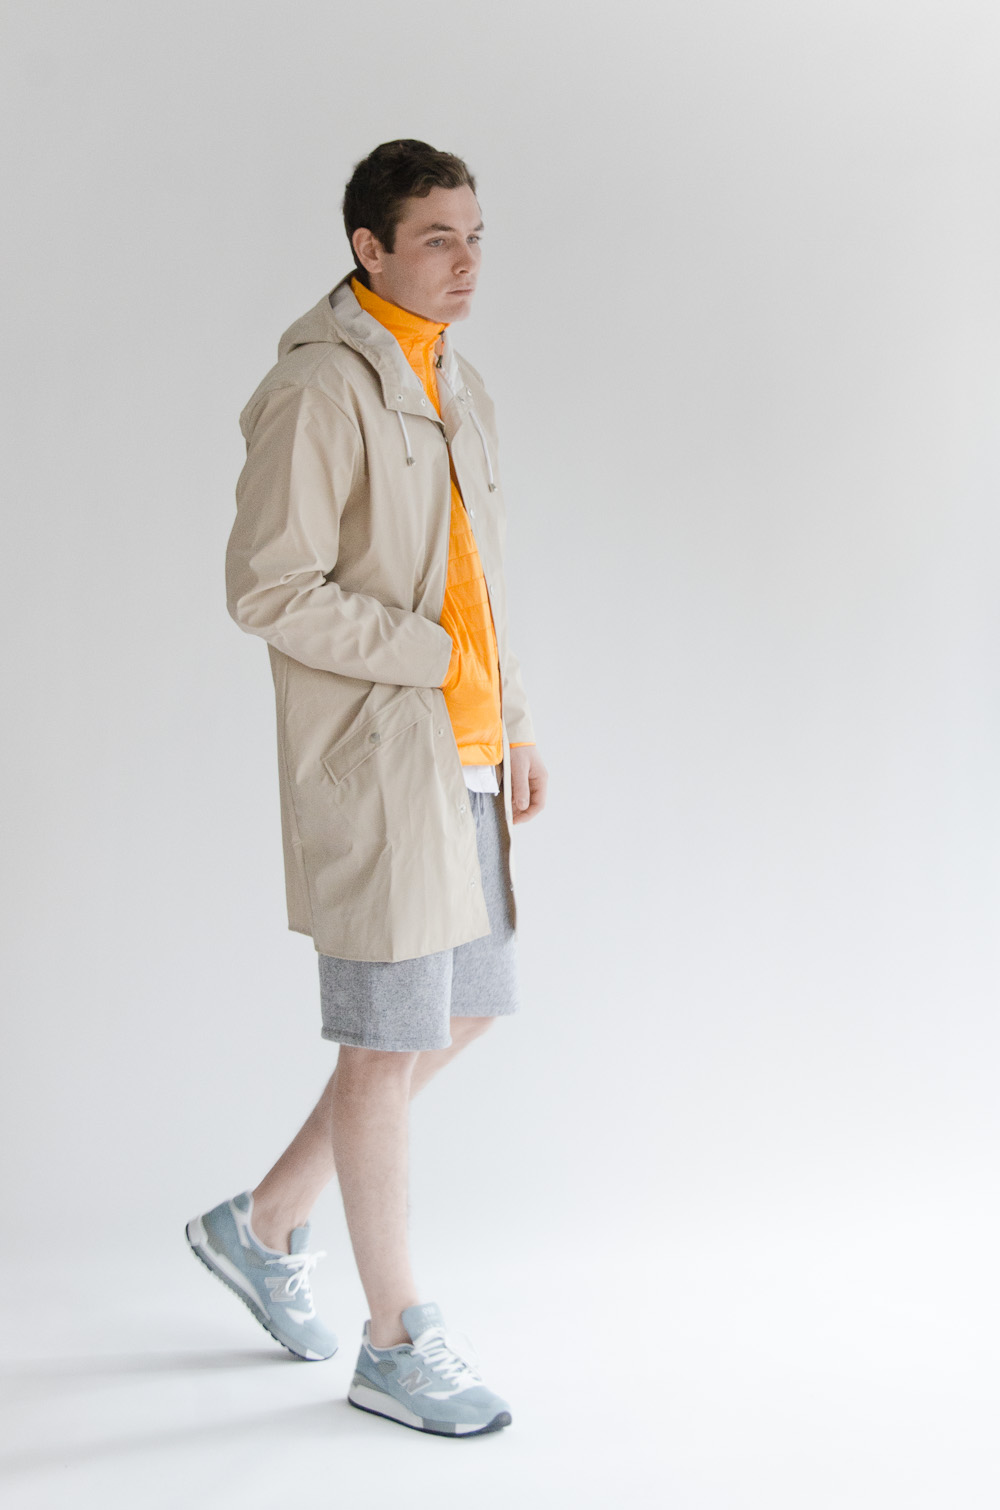 SP14-Lookbook-4.jpg